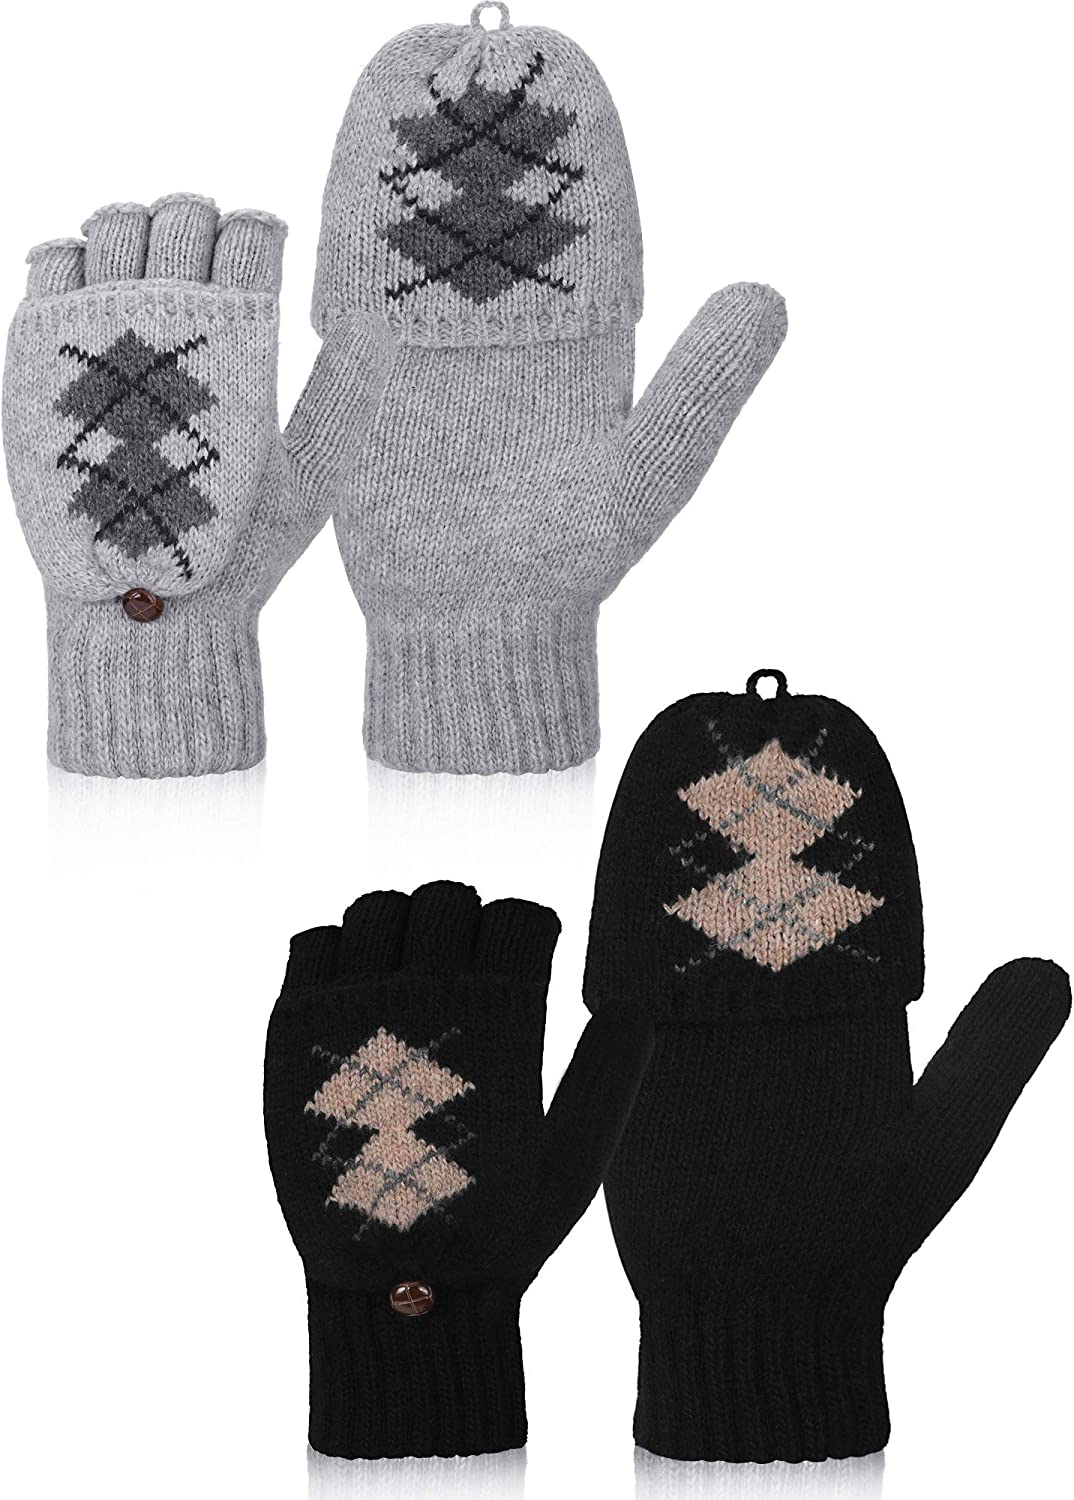 2 Pairs Women's Winter Fingerless Gloves Winter Knitted Mittens Convertible Gloves with Buttoned Thumb Cover (Style Set 6)